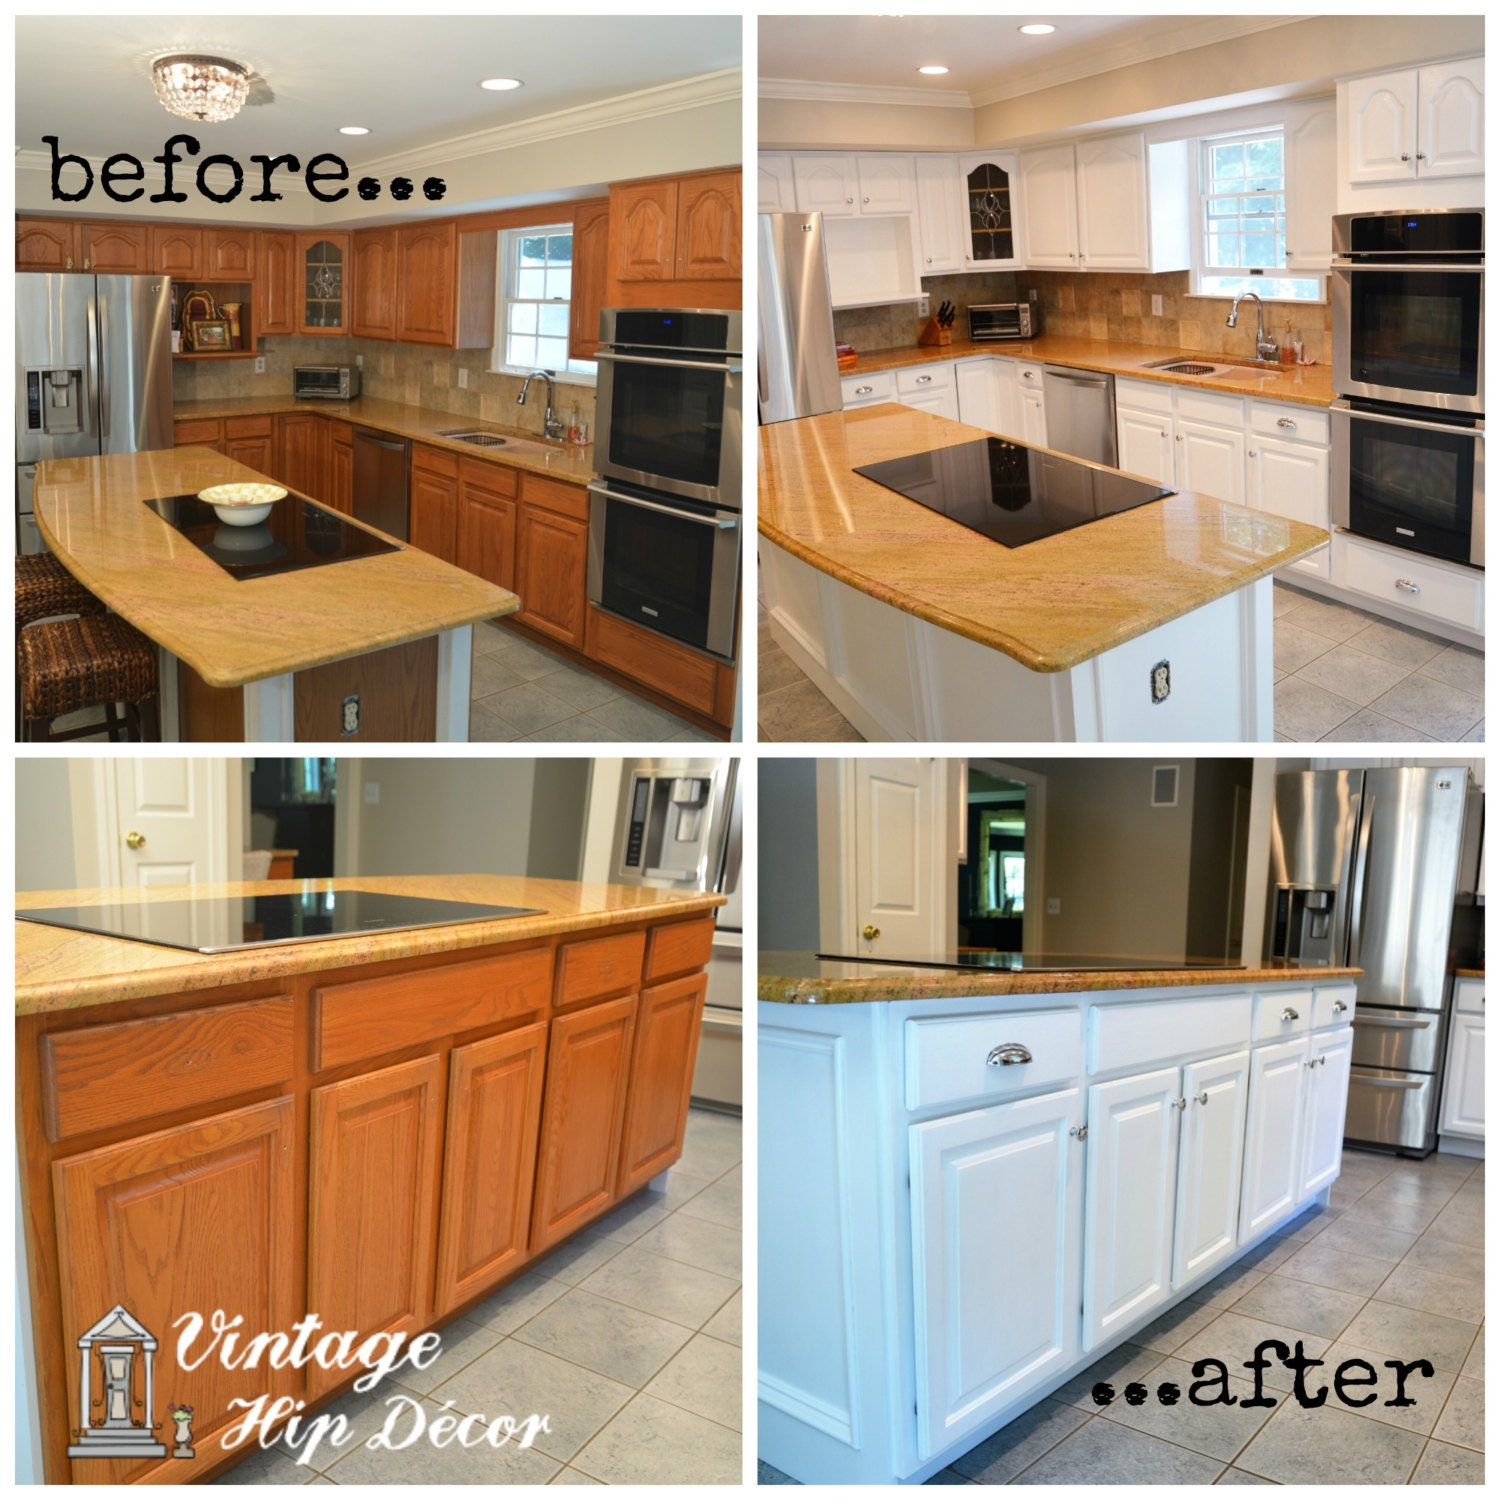 How To Refinish Kitchen Cabinets Yourself: Refinishing Kitchen Cabinets